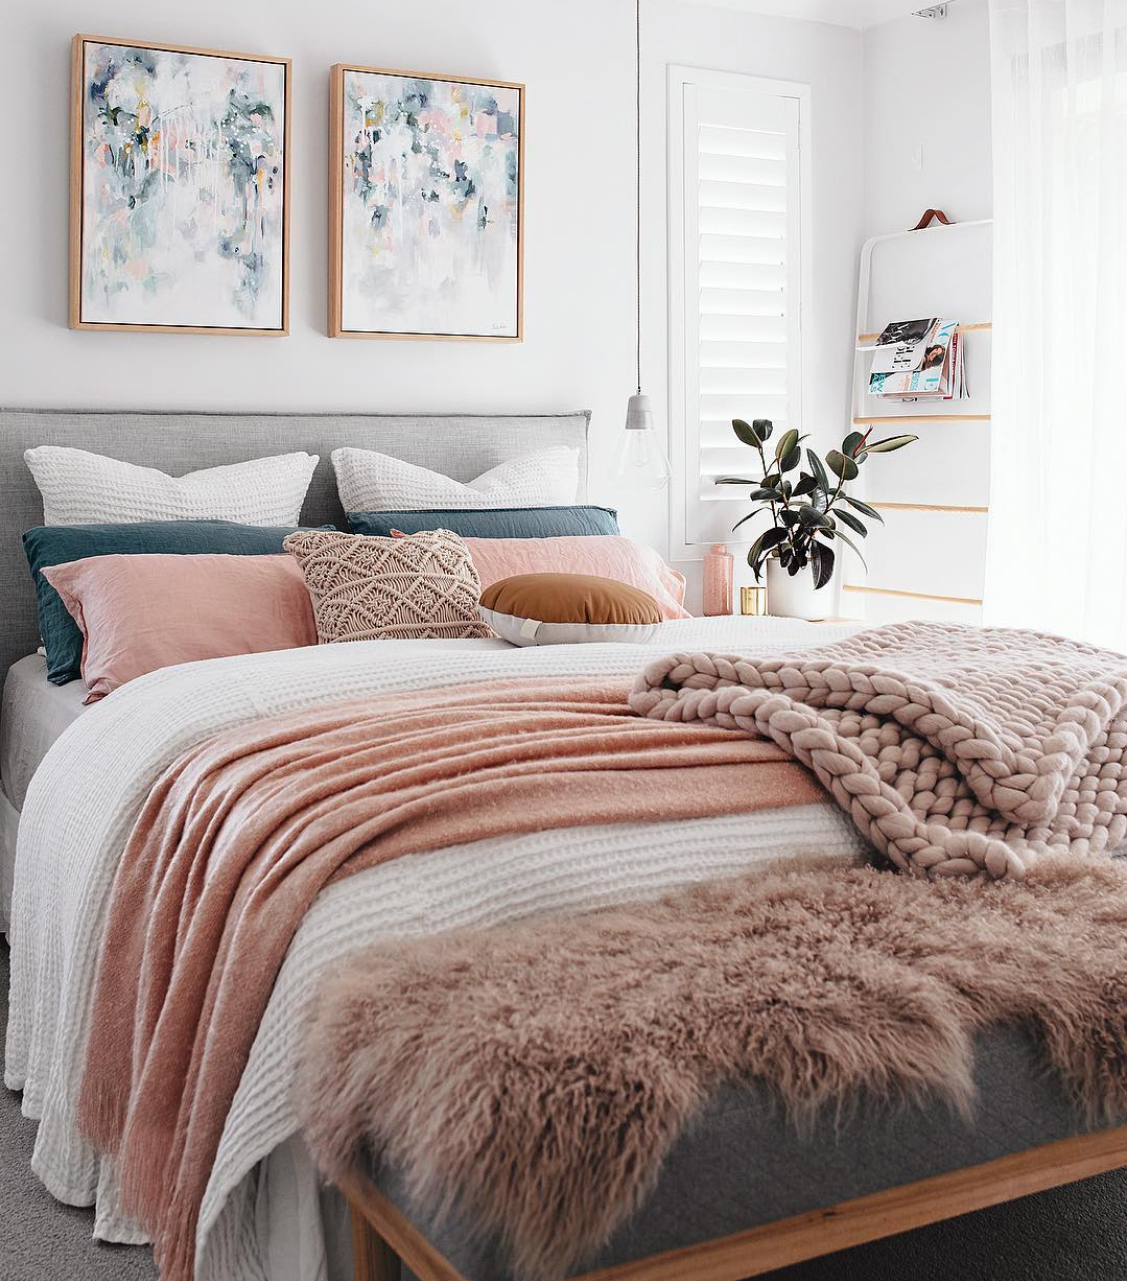 Bedroom Ideas Pinterest: Top Tips: The Best Way To Layer Your Bed For Winter